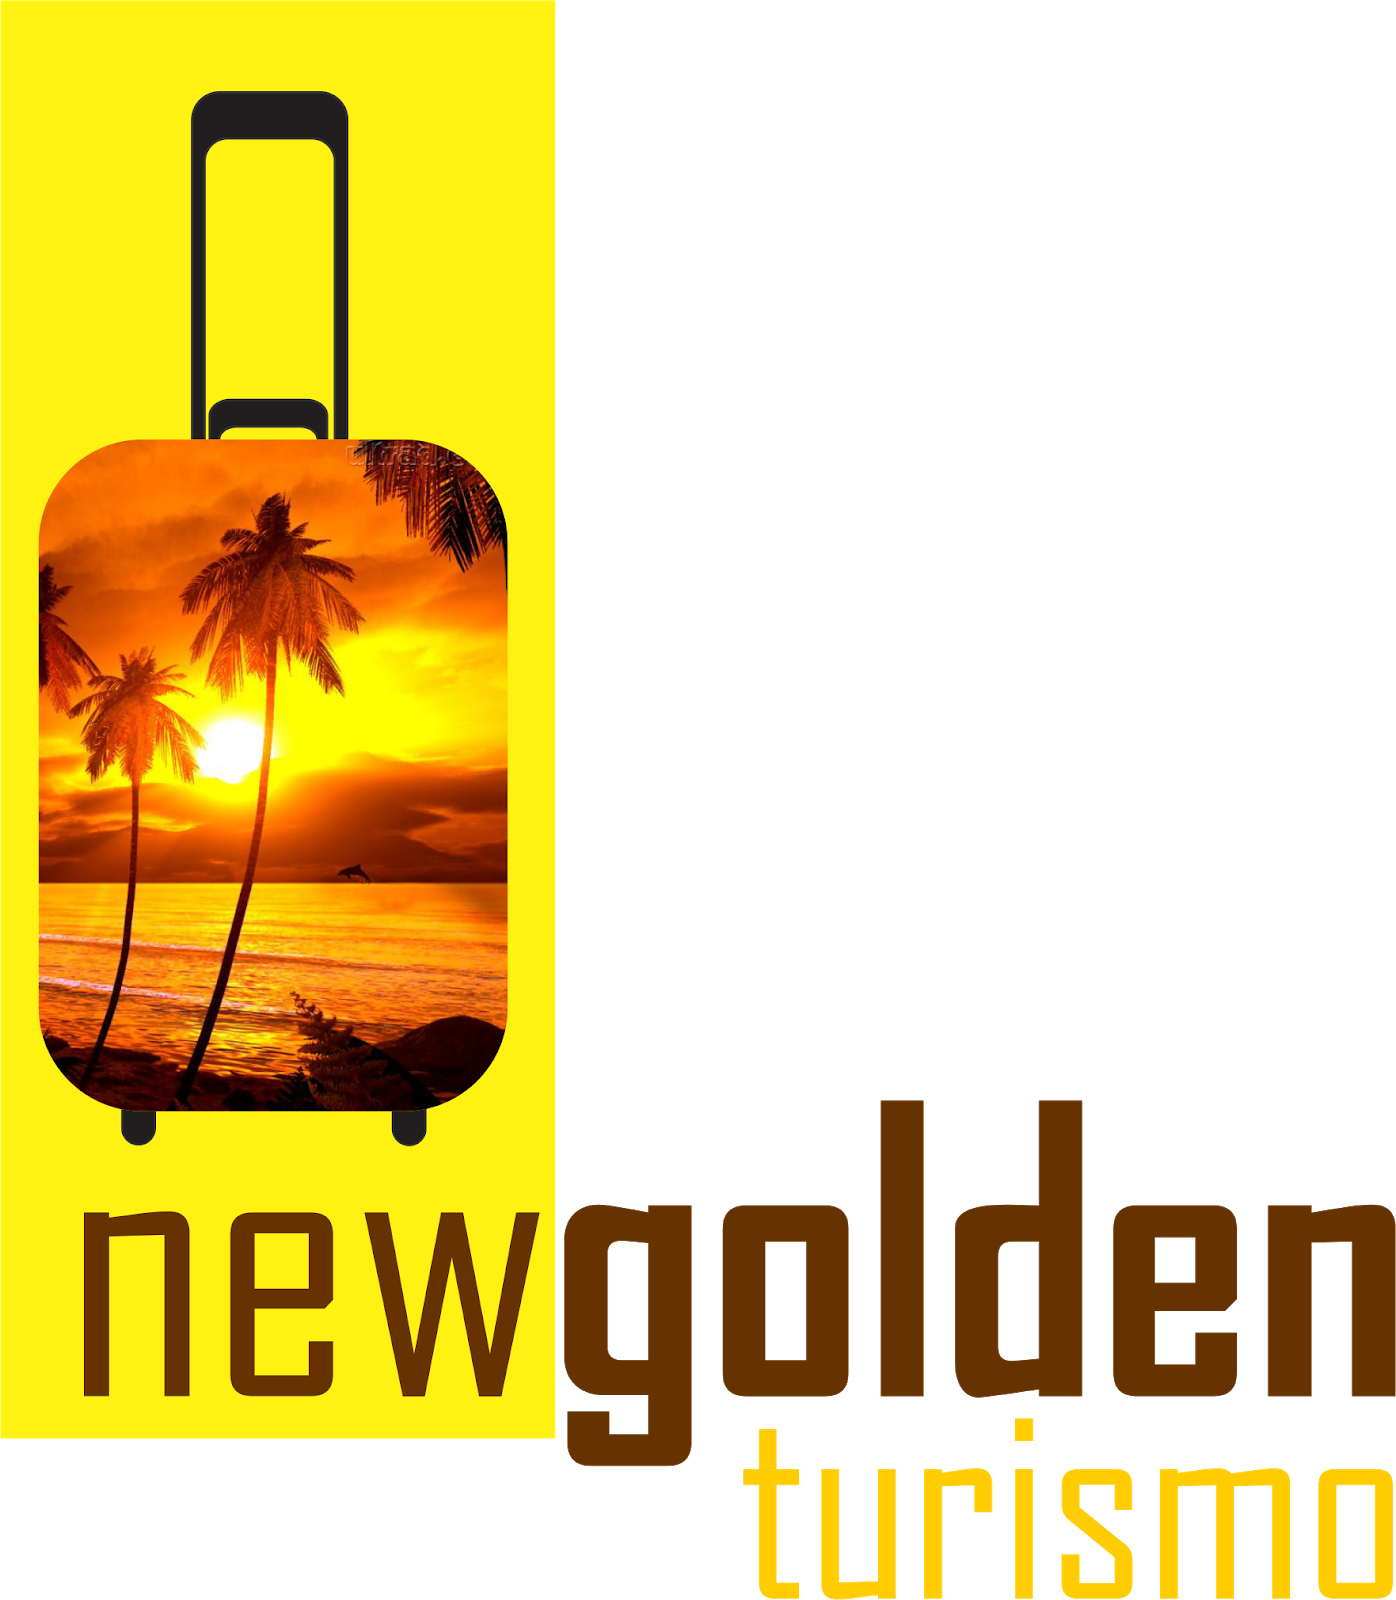 New Golden Turismo